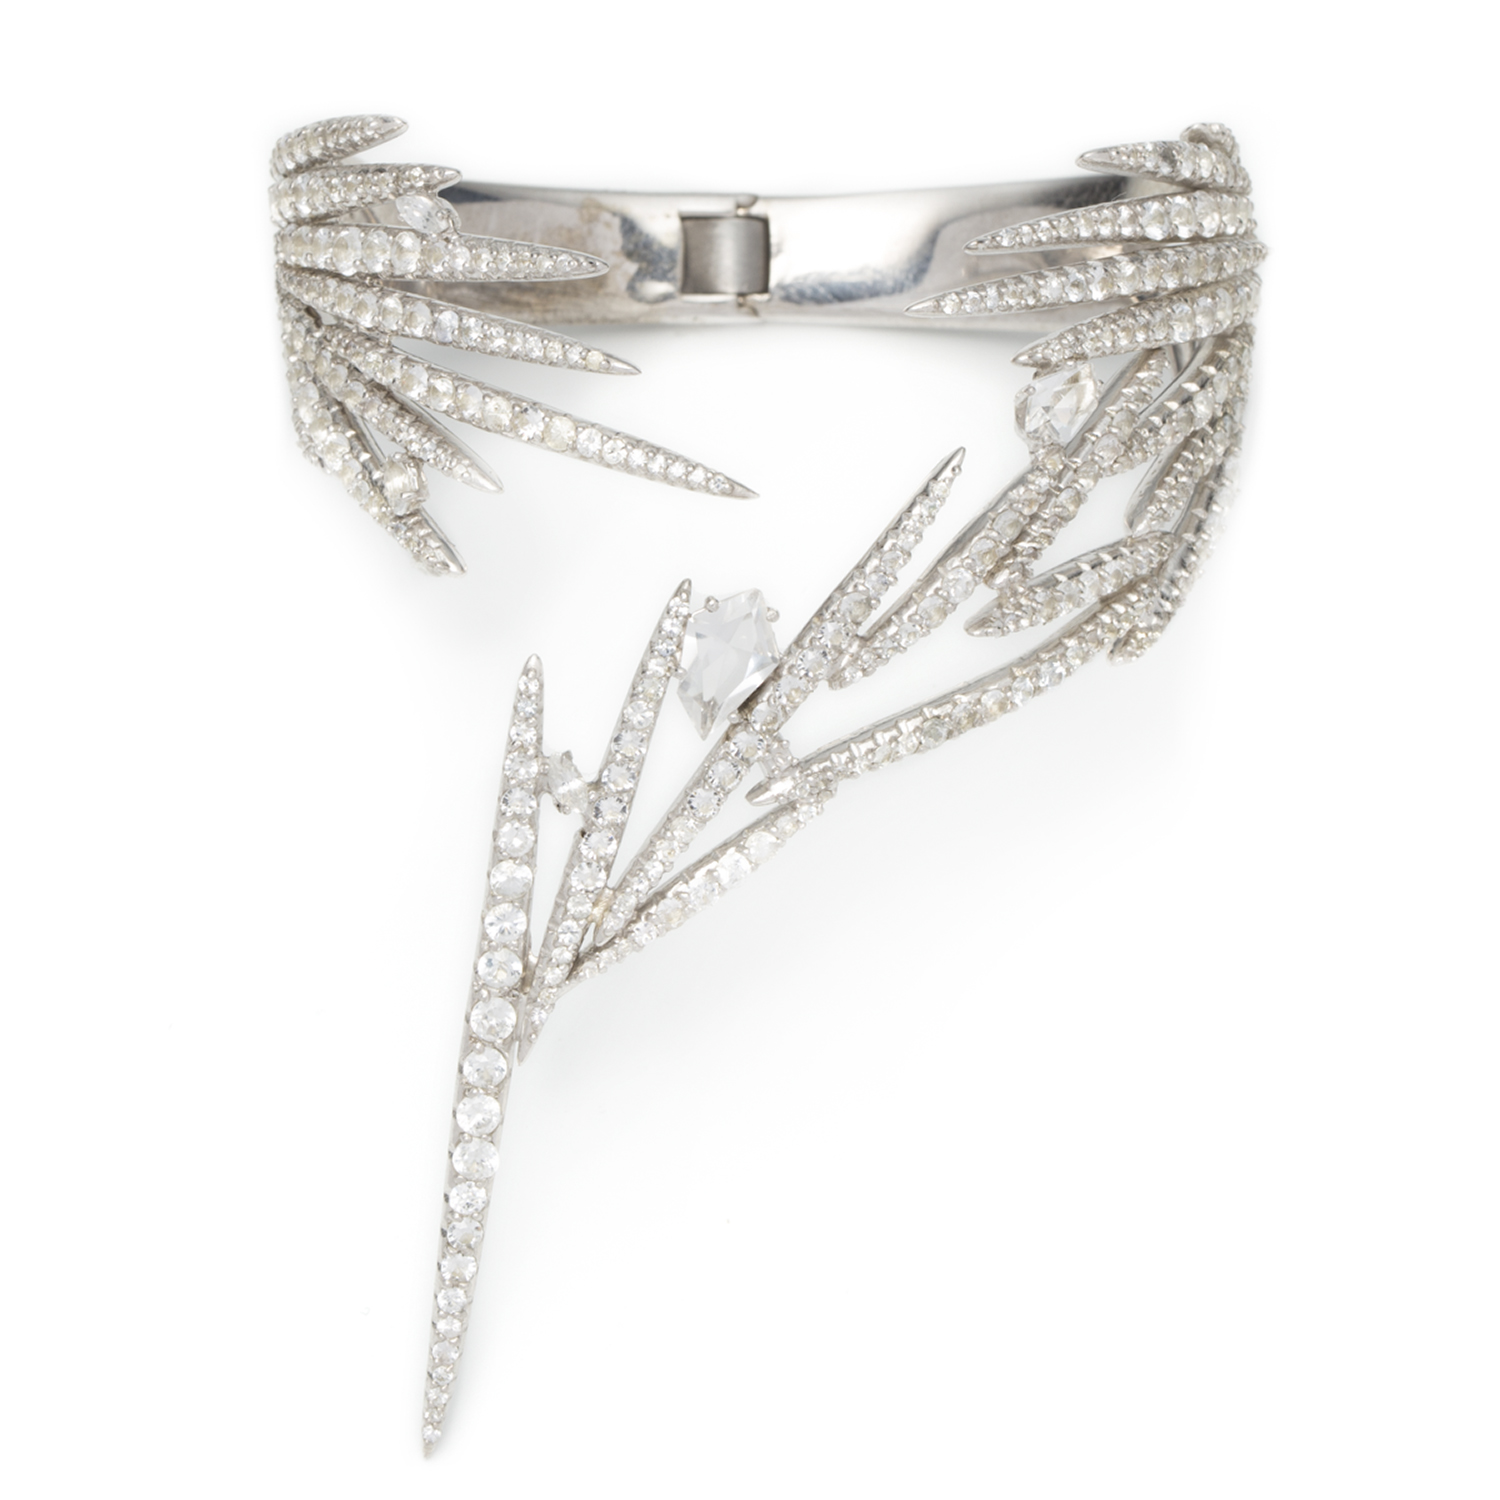 Alexis Bittar Waterfall spike hinge cuff in sterling silver, white sapphire pave and white topaz, $19,995, Available at all Alexis Bittar Boutiques Nationwide (Photo: Courtesy Alexis Bittar).